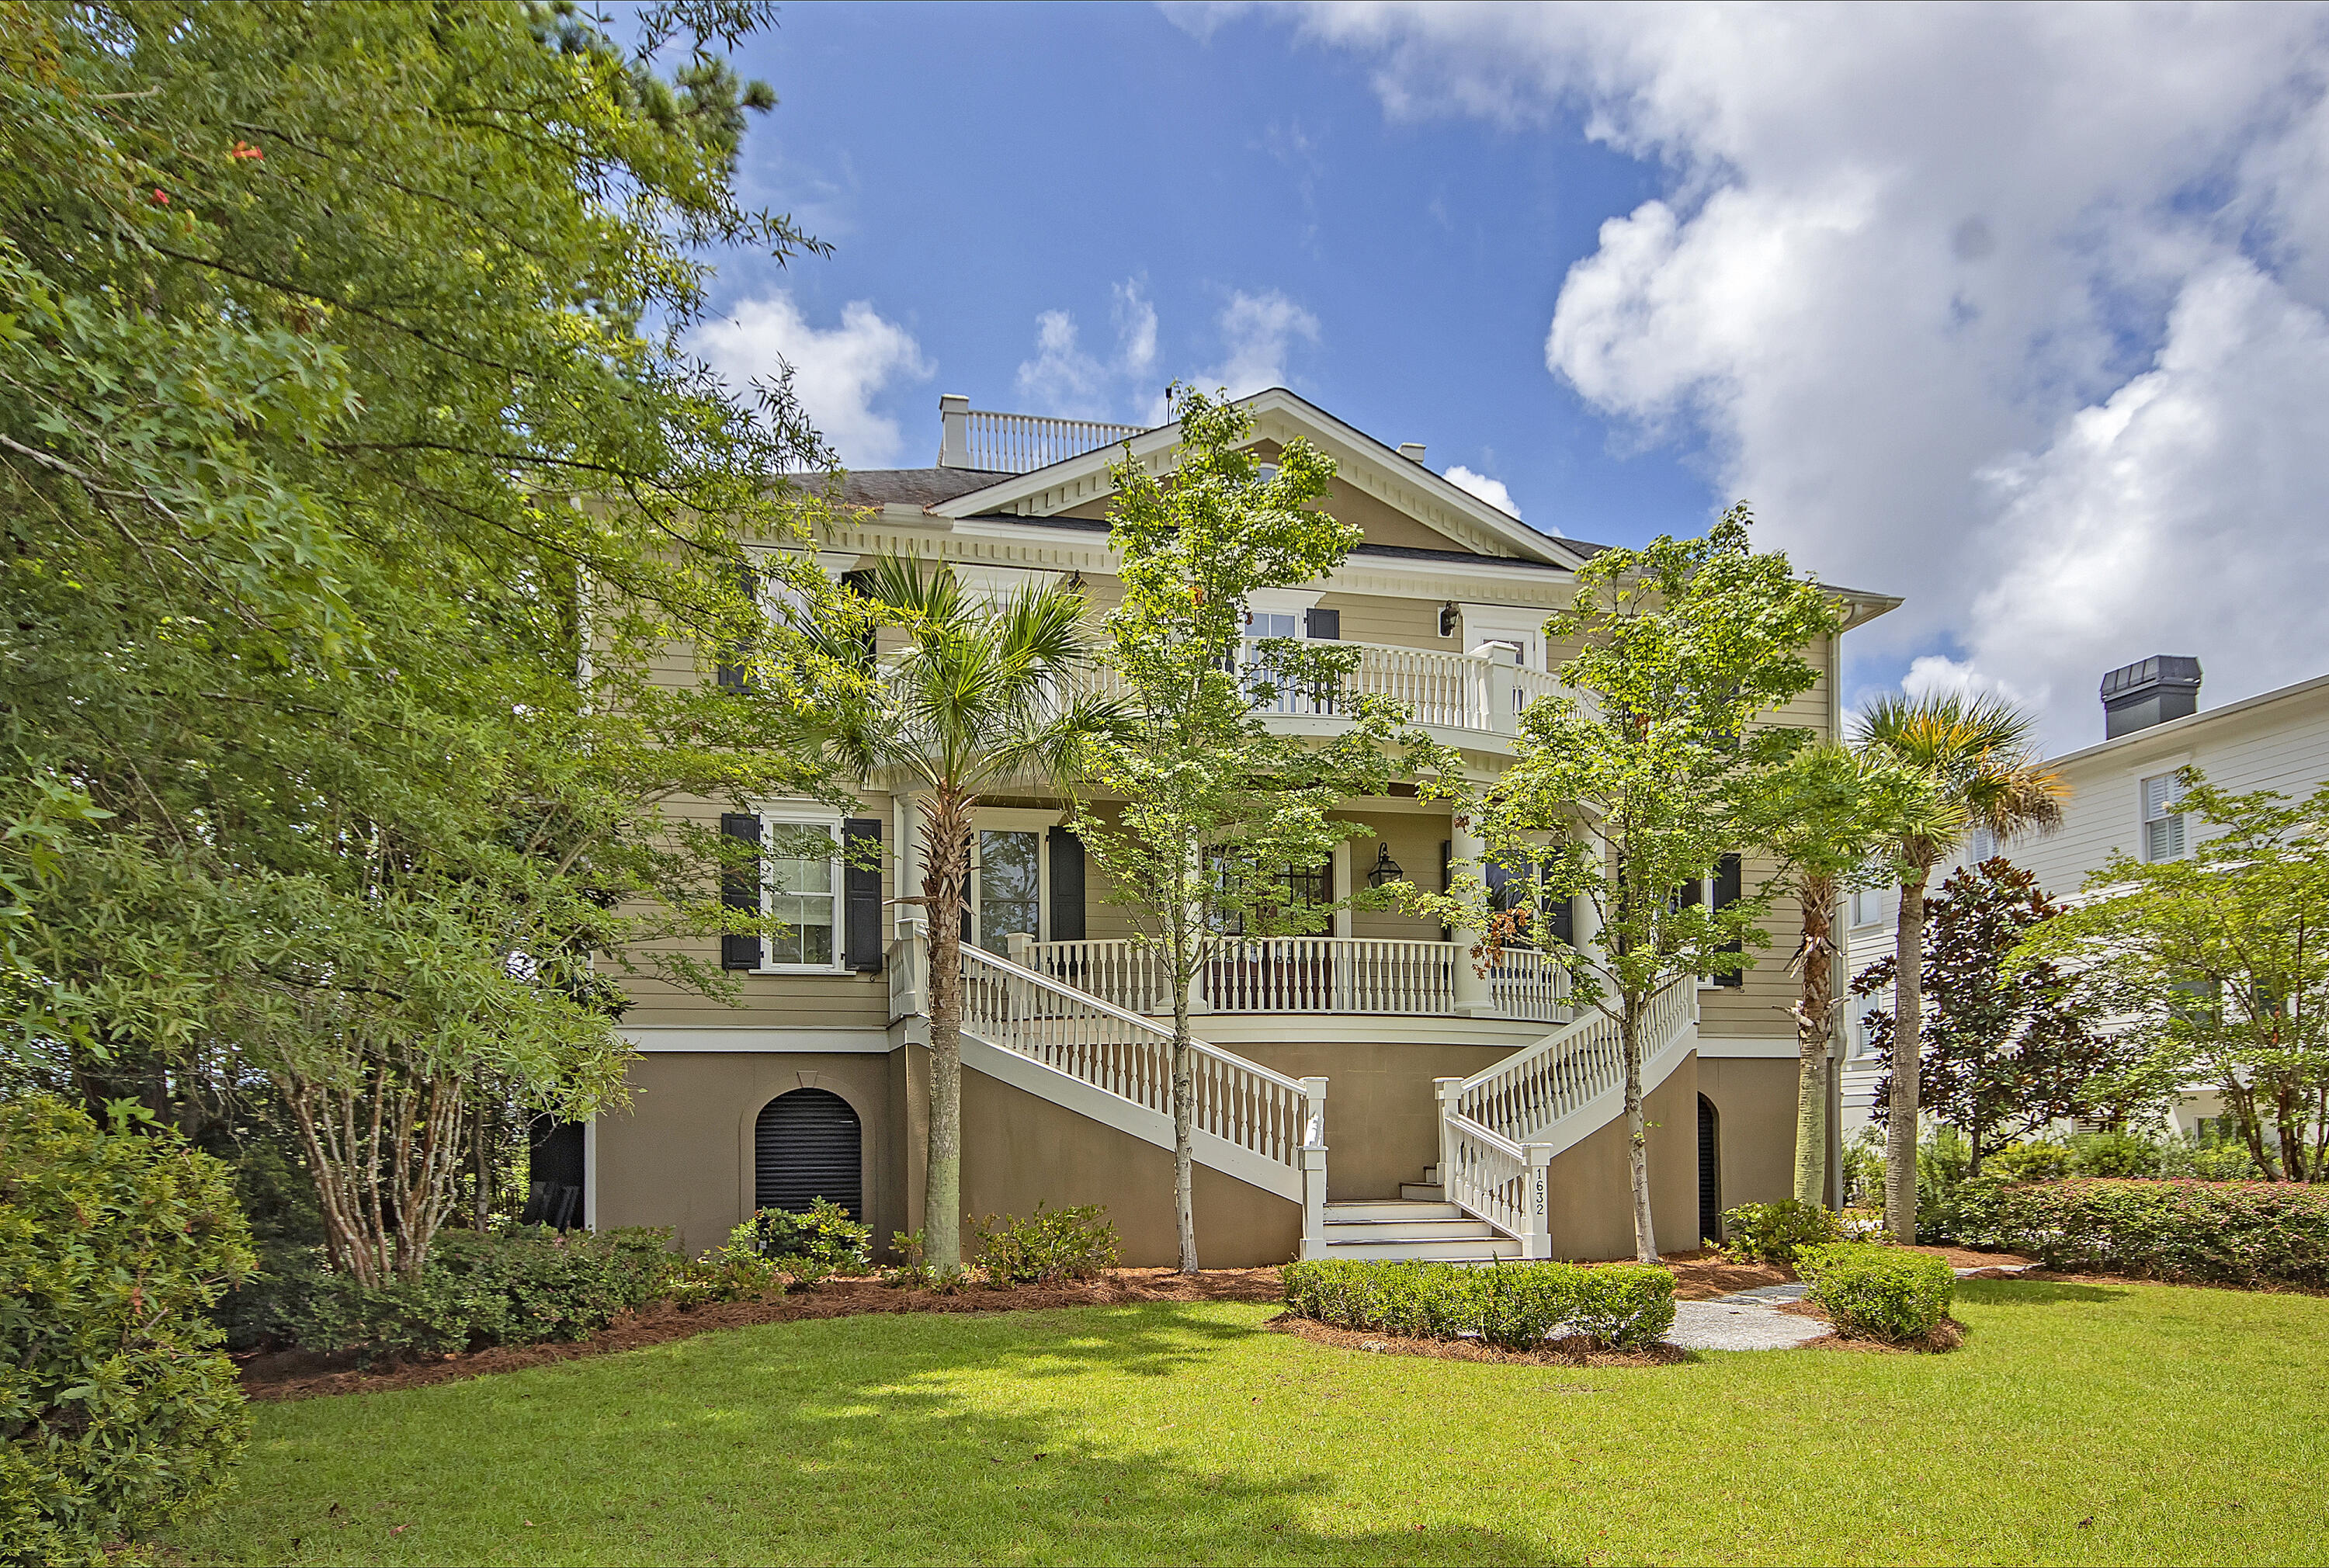 Rivertowne Country Club Homes For Sale - 1632 Rivertowne Country Club, Mount Pleasant, SC - 6